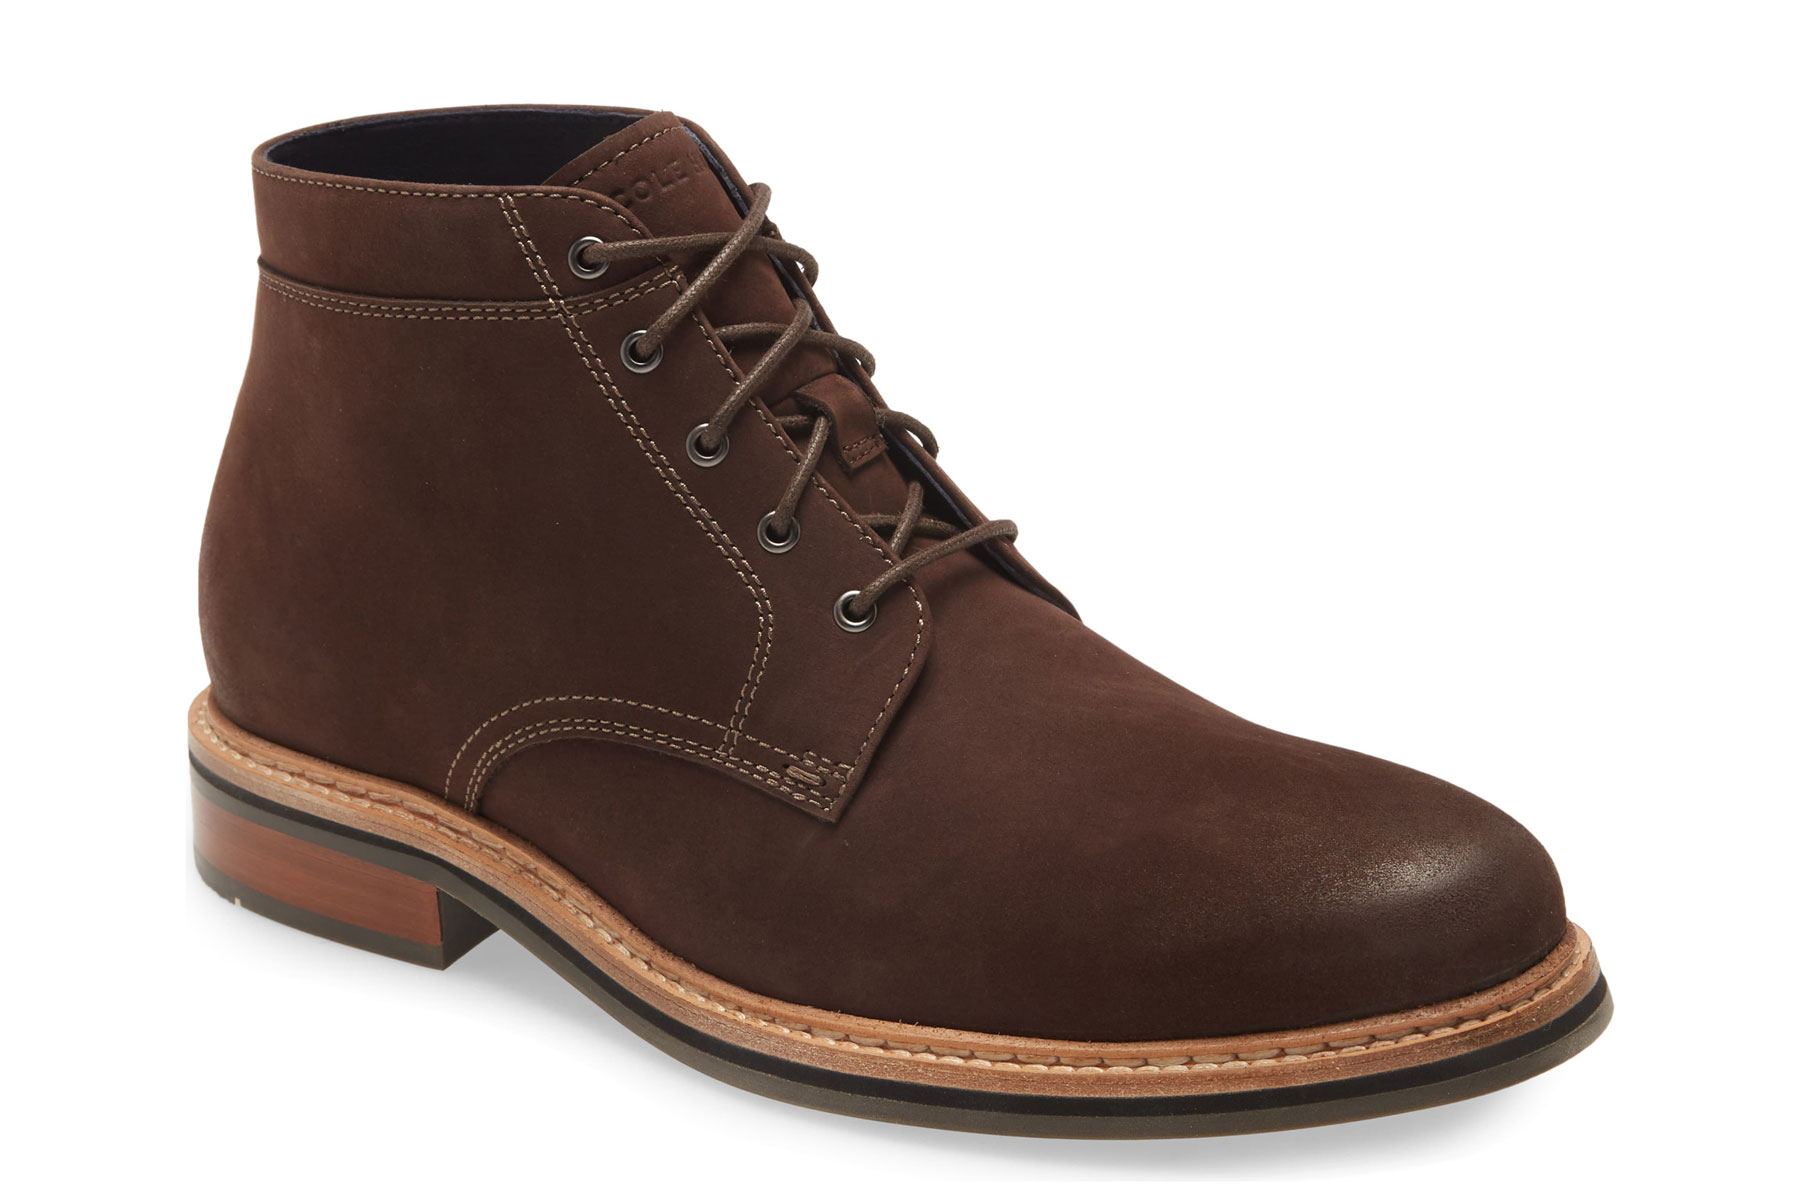 Men's brown lace up boots